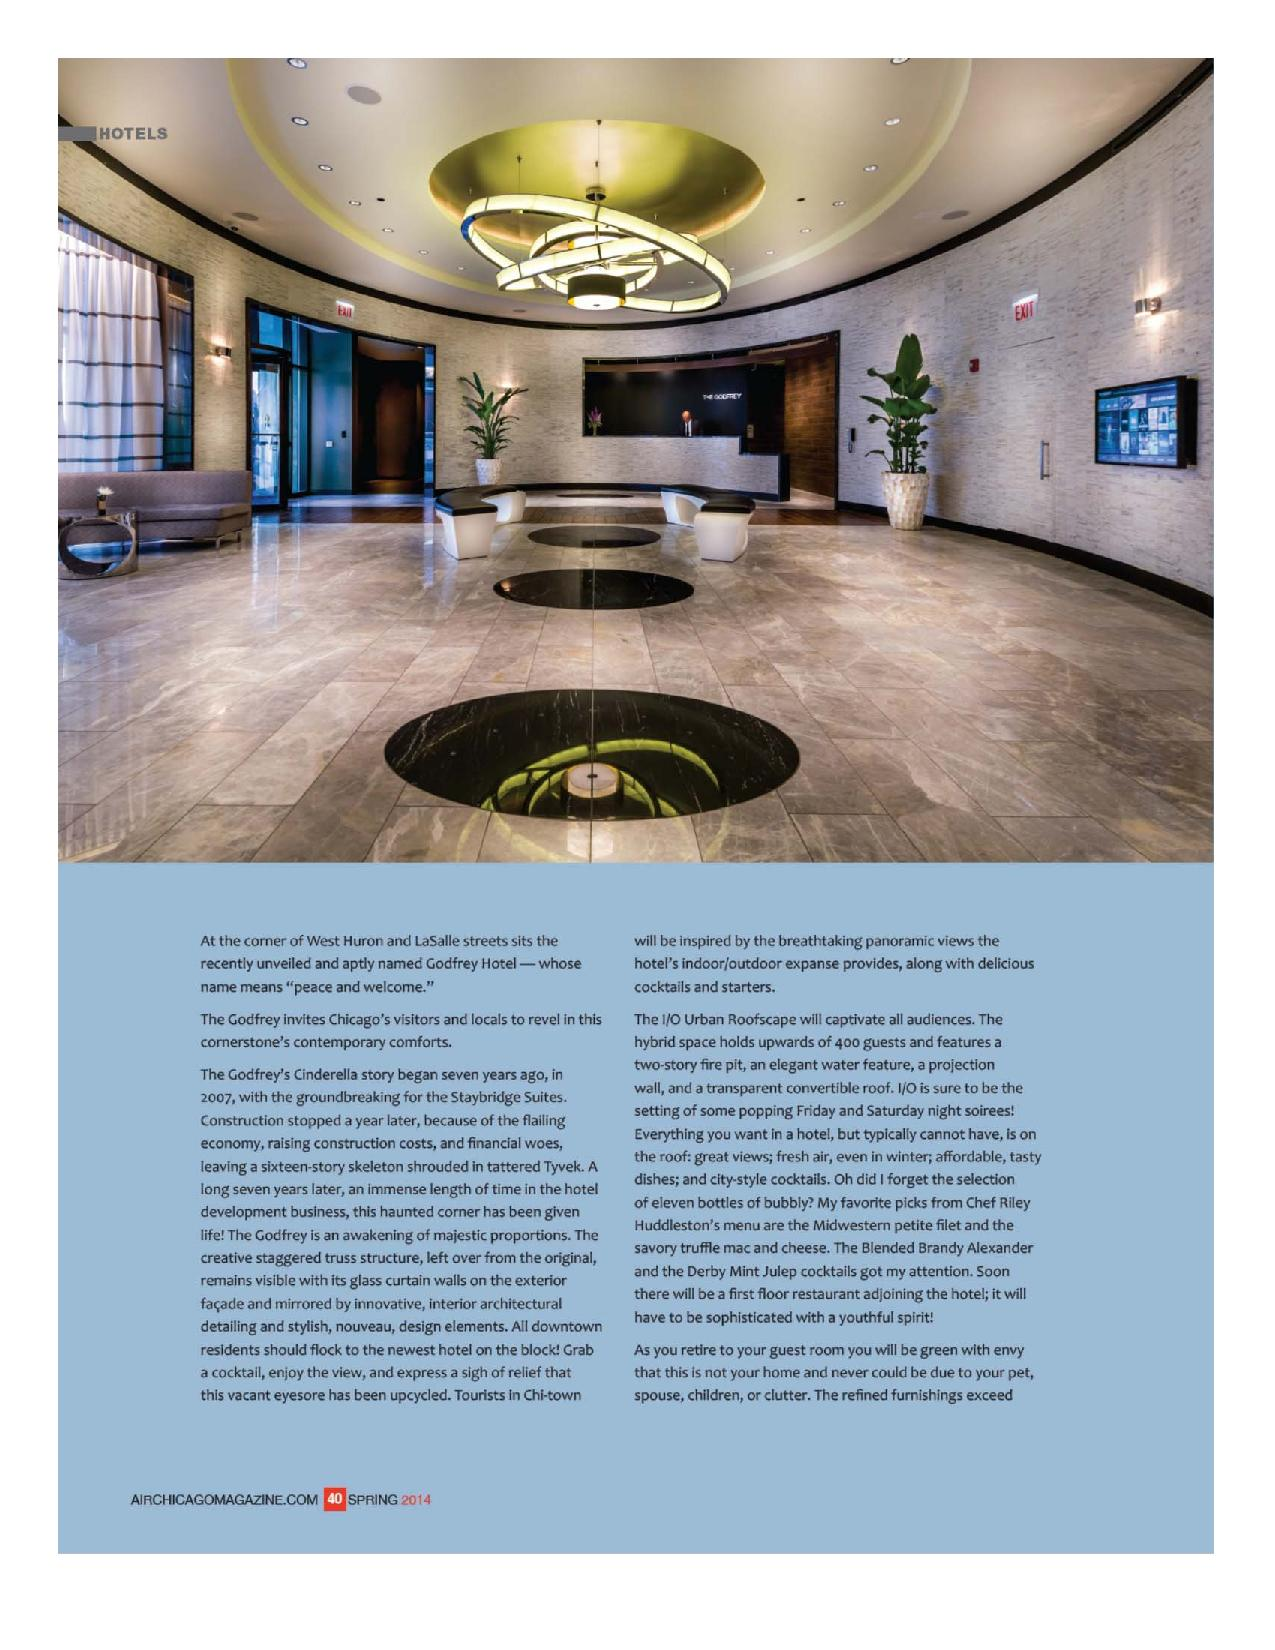 Siobhan higgins review of the godfrey hotel in airchicago for Godfrey design build